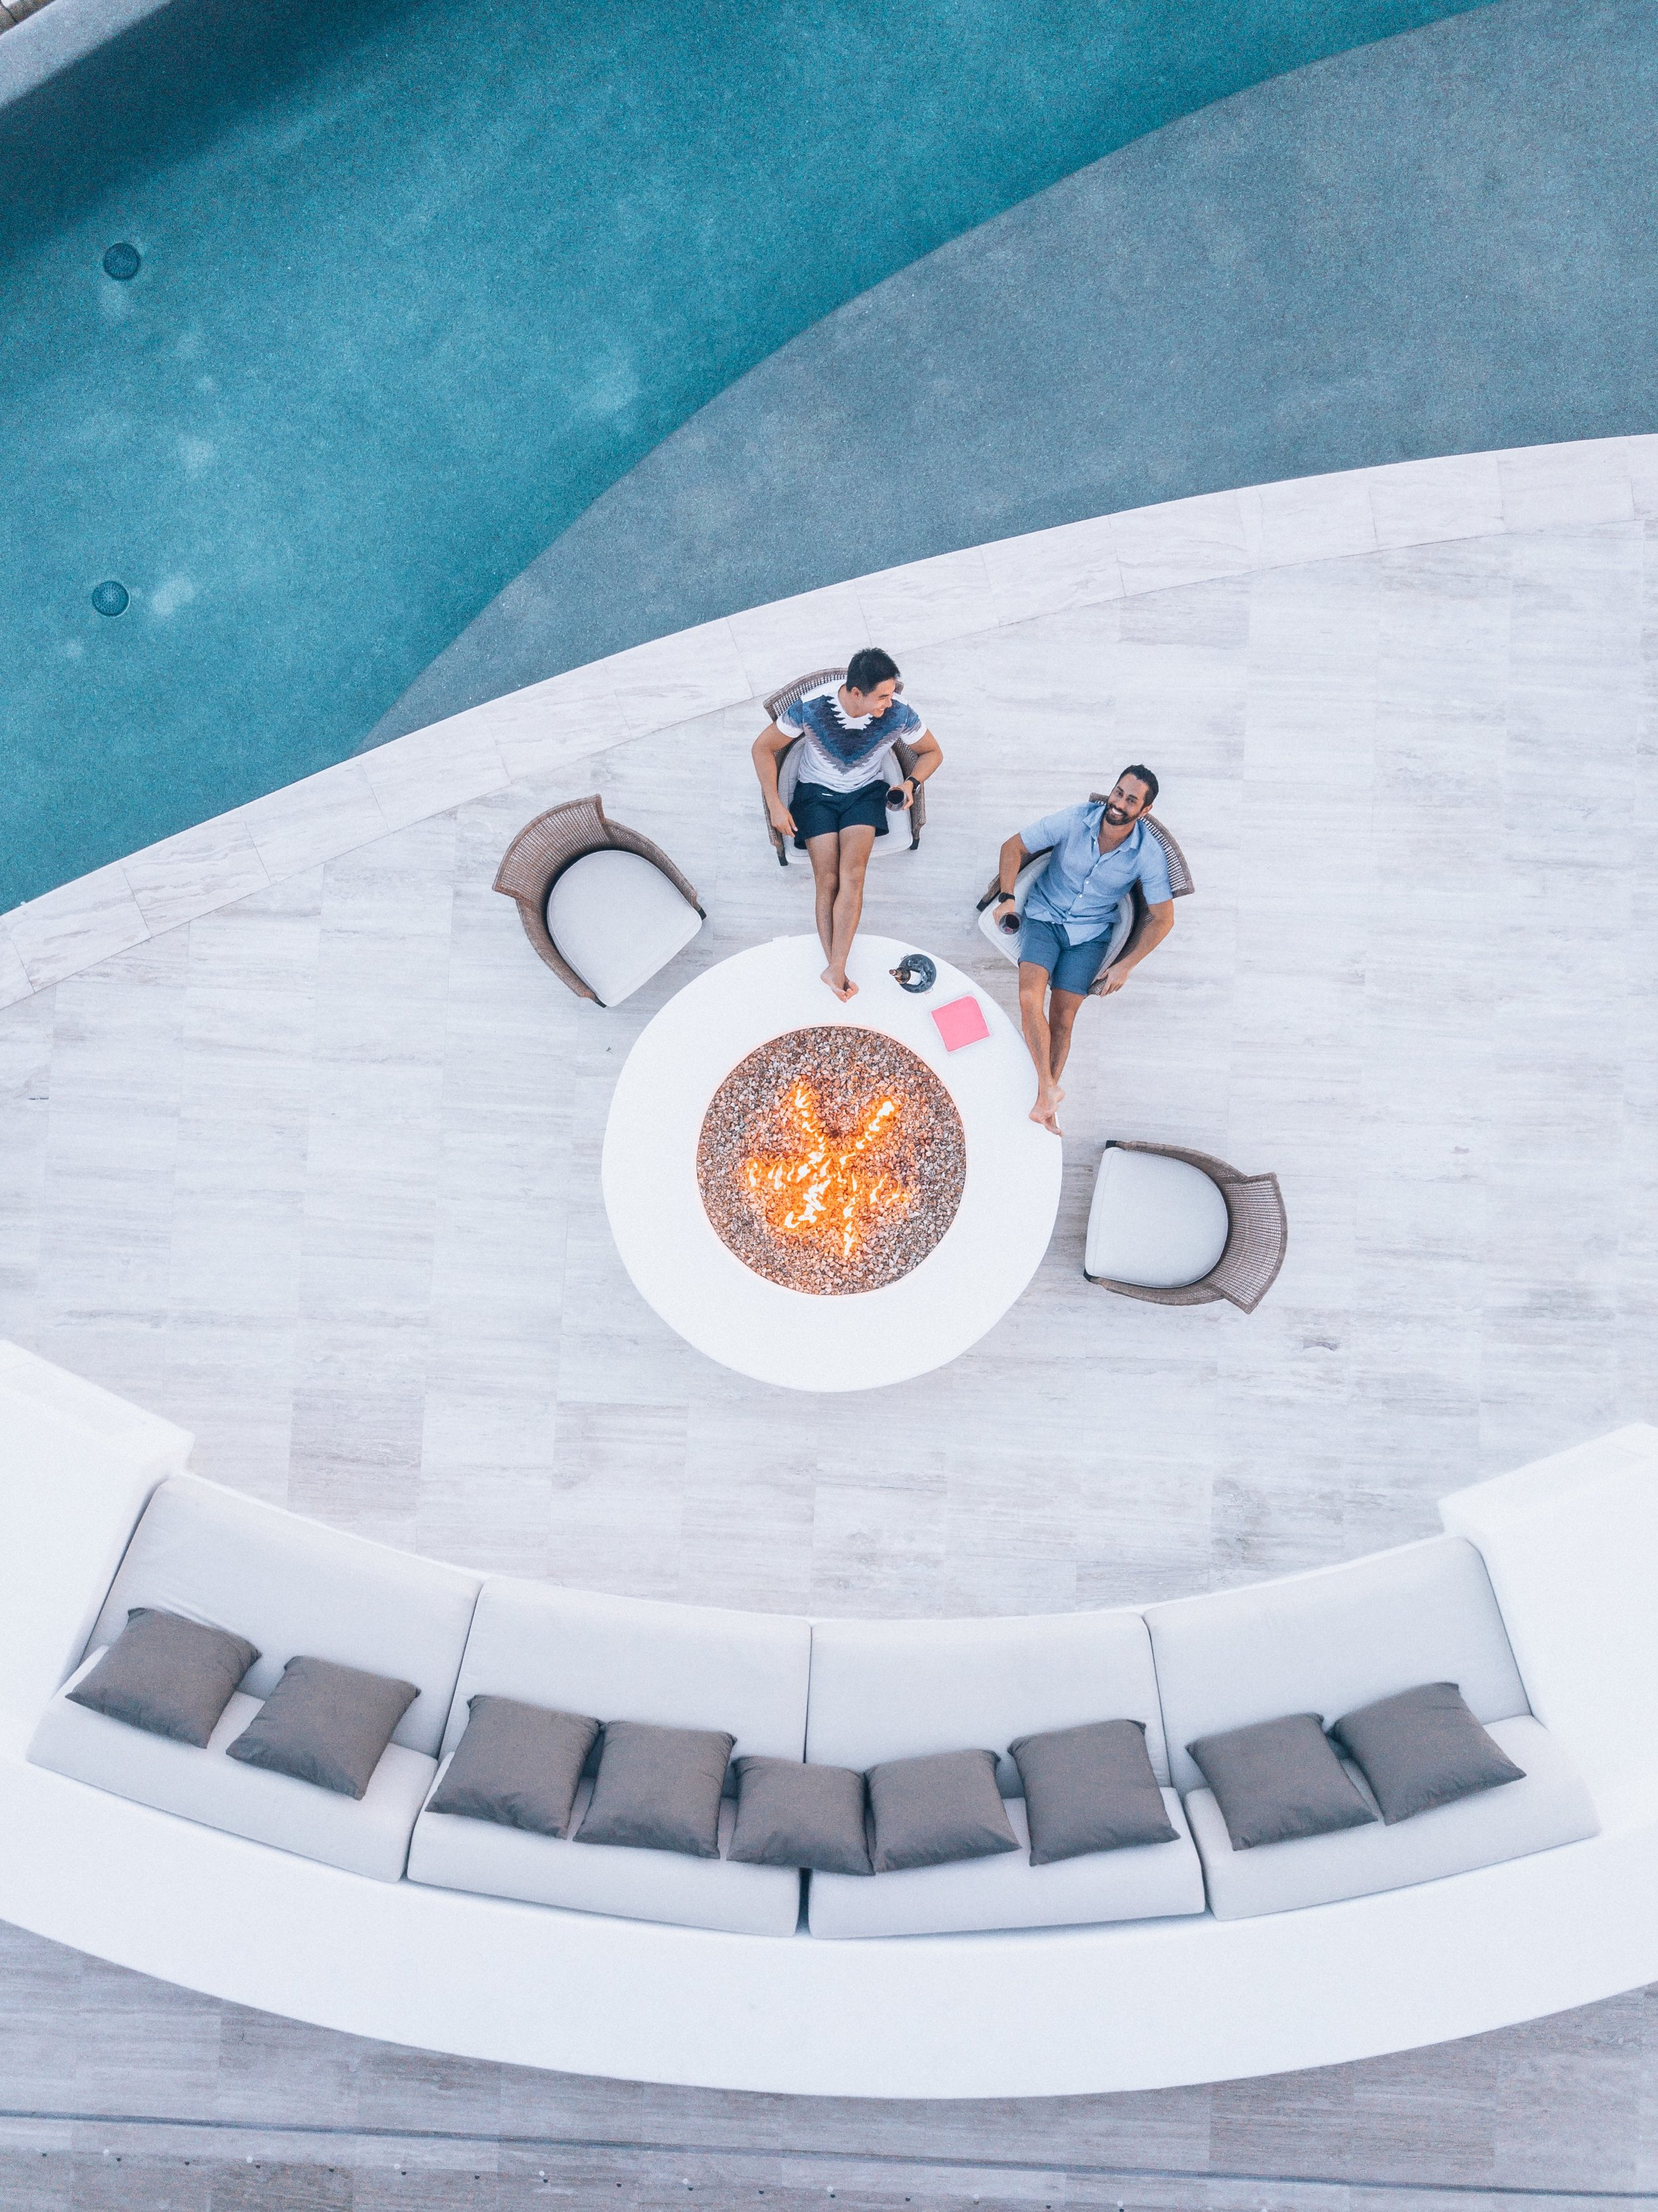 The fire pit is the perfect place for a glass of wine and to watch the sunset.